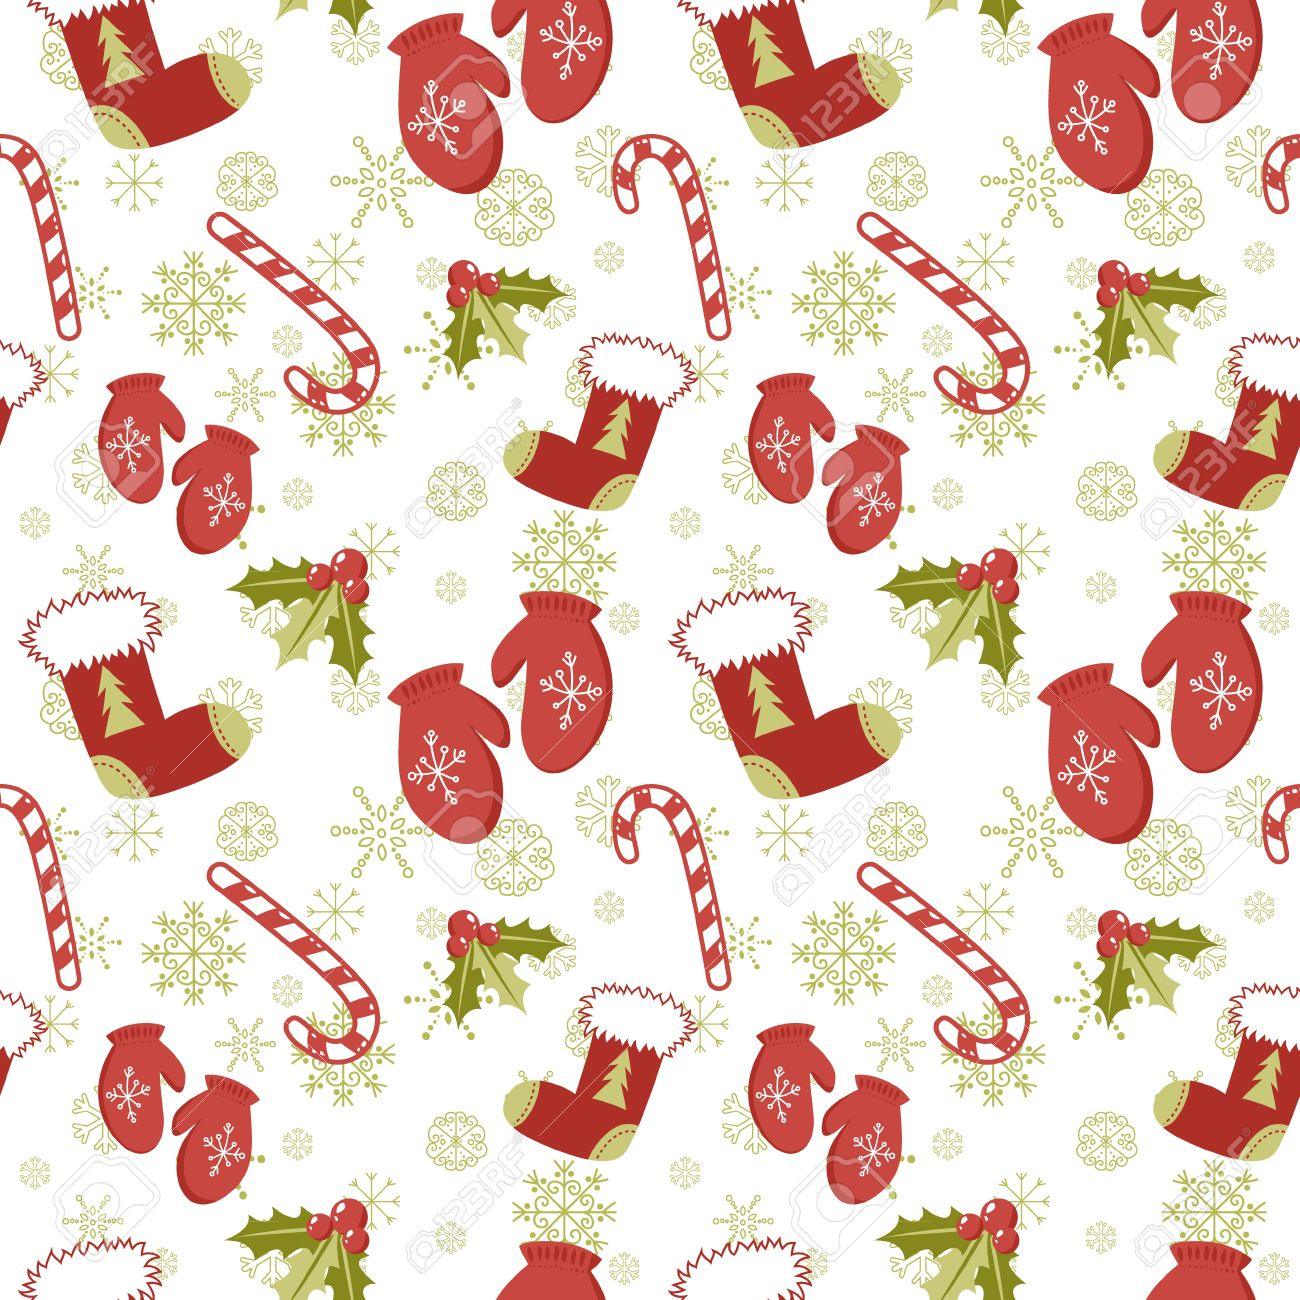 15589239 seamless pattern with cute cartoon christmas mittens candy cane holly berries and red stocking with